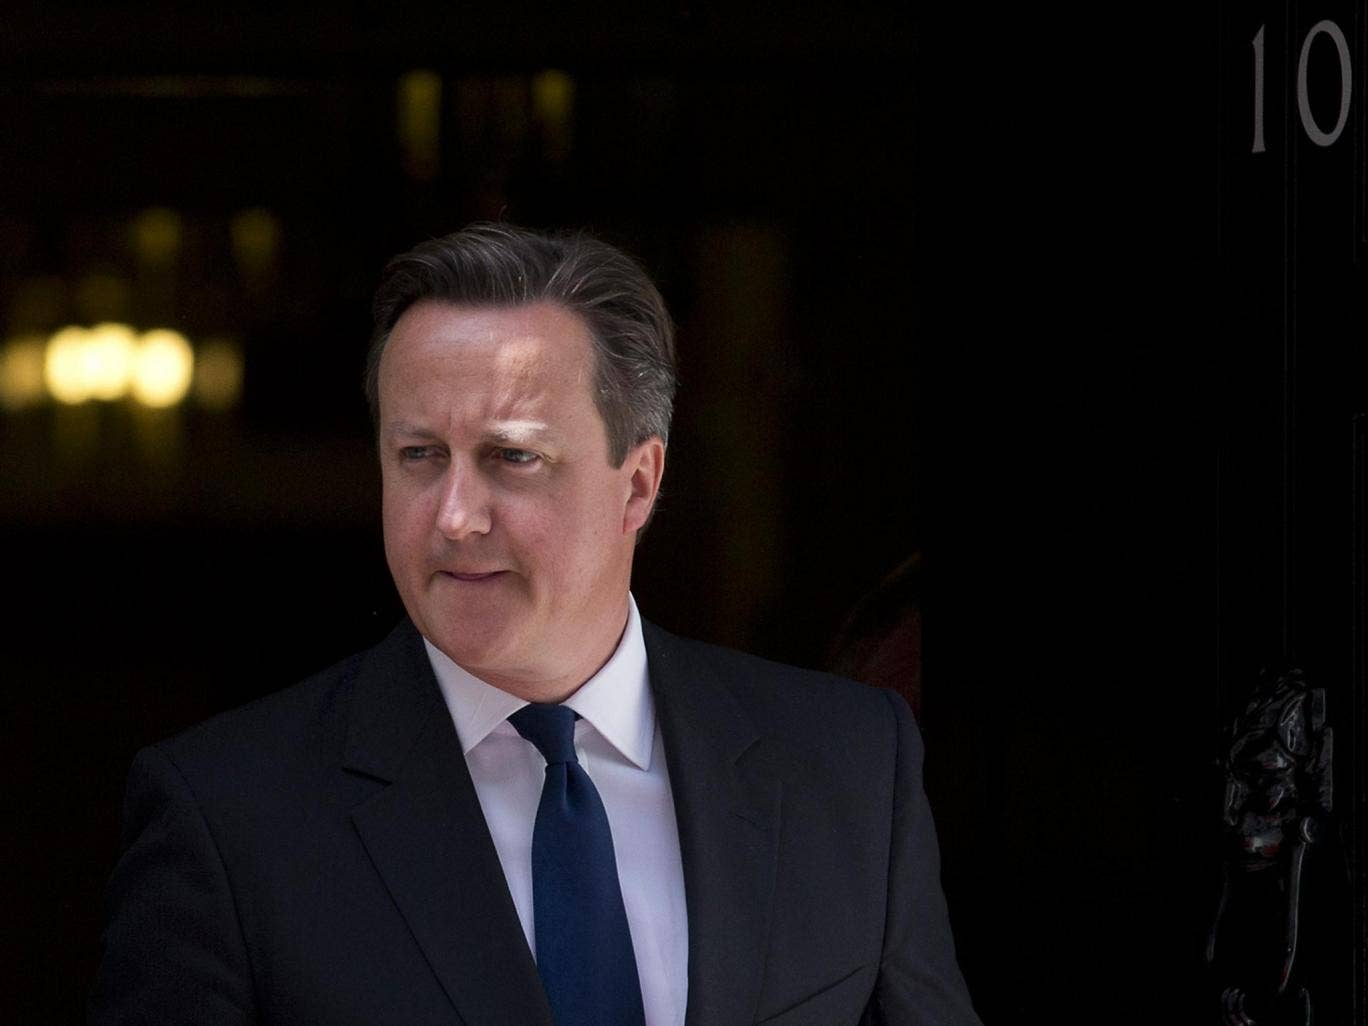 Labour and the Liberal Democrats believe David Cameron is getting cold feet over the live televised debates